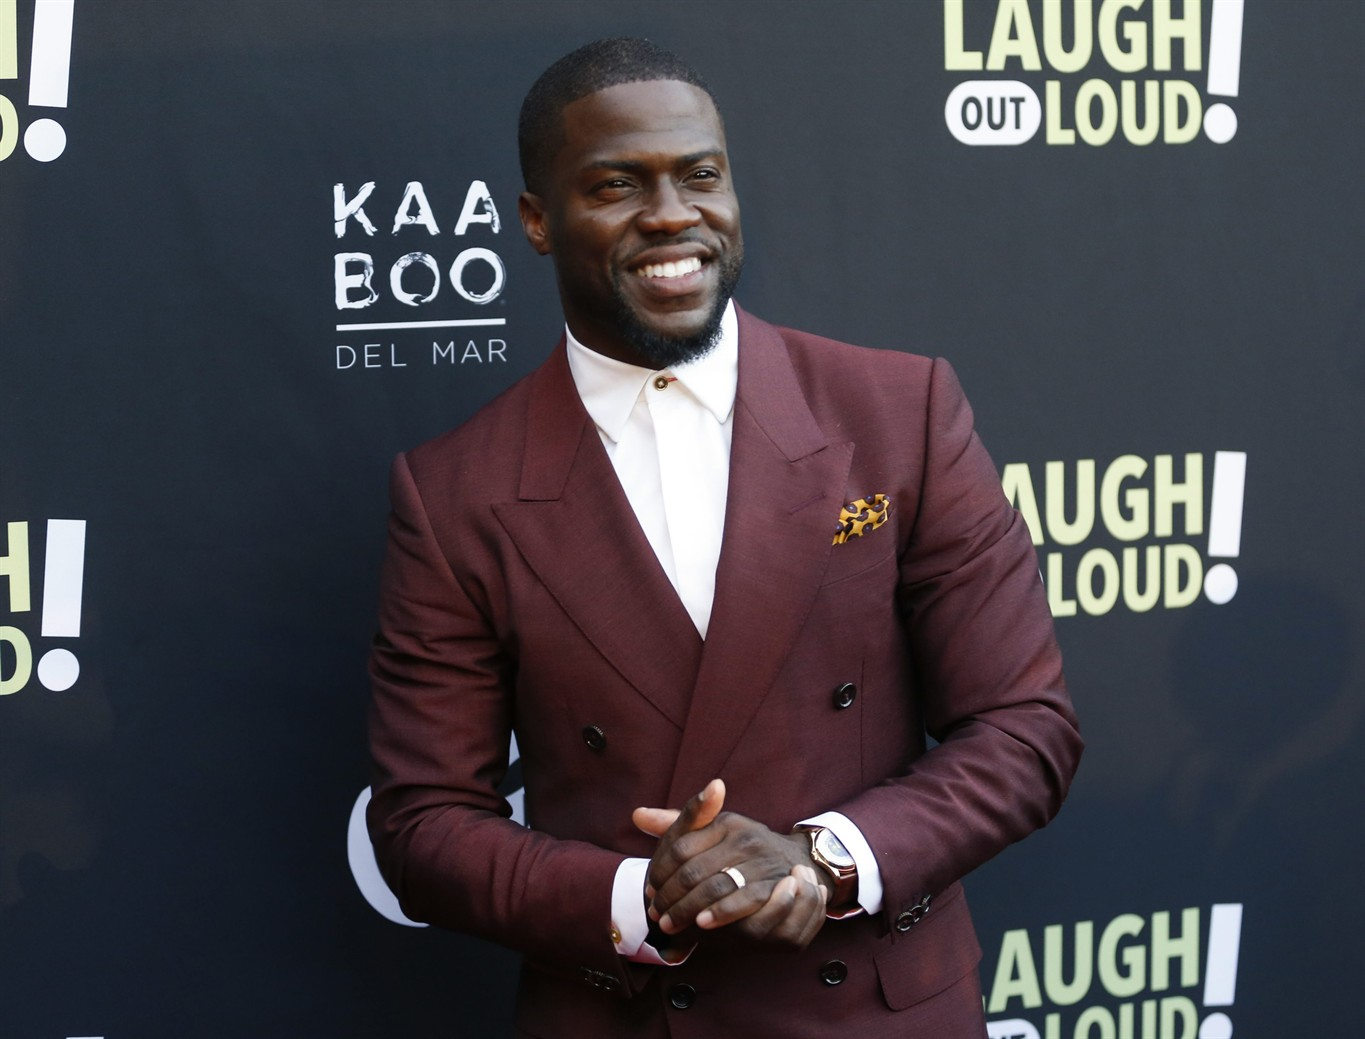 Kevin Hart to Use Cheating Scandal as Material in Upcoming Tour